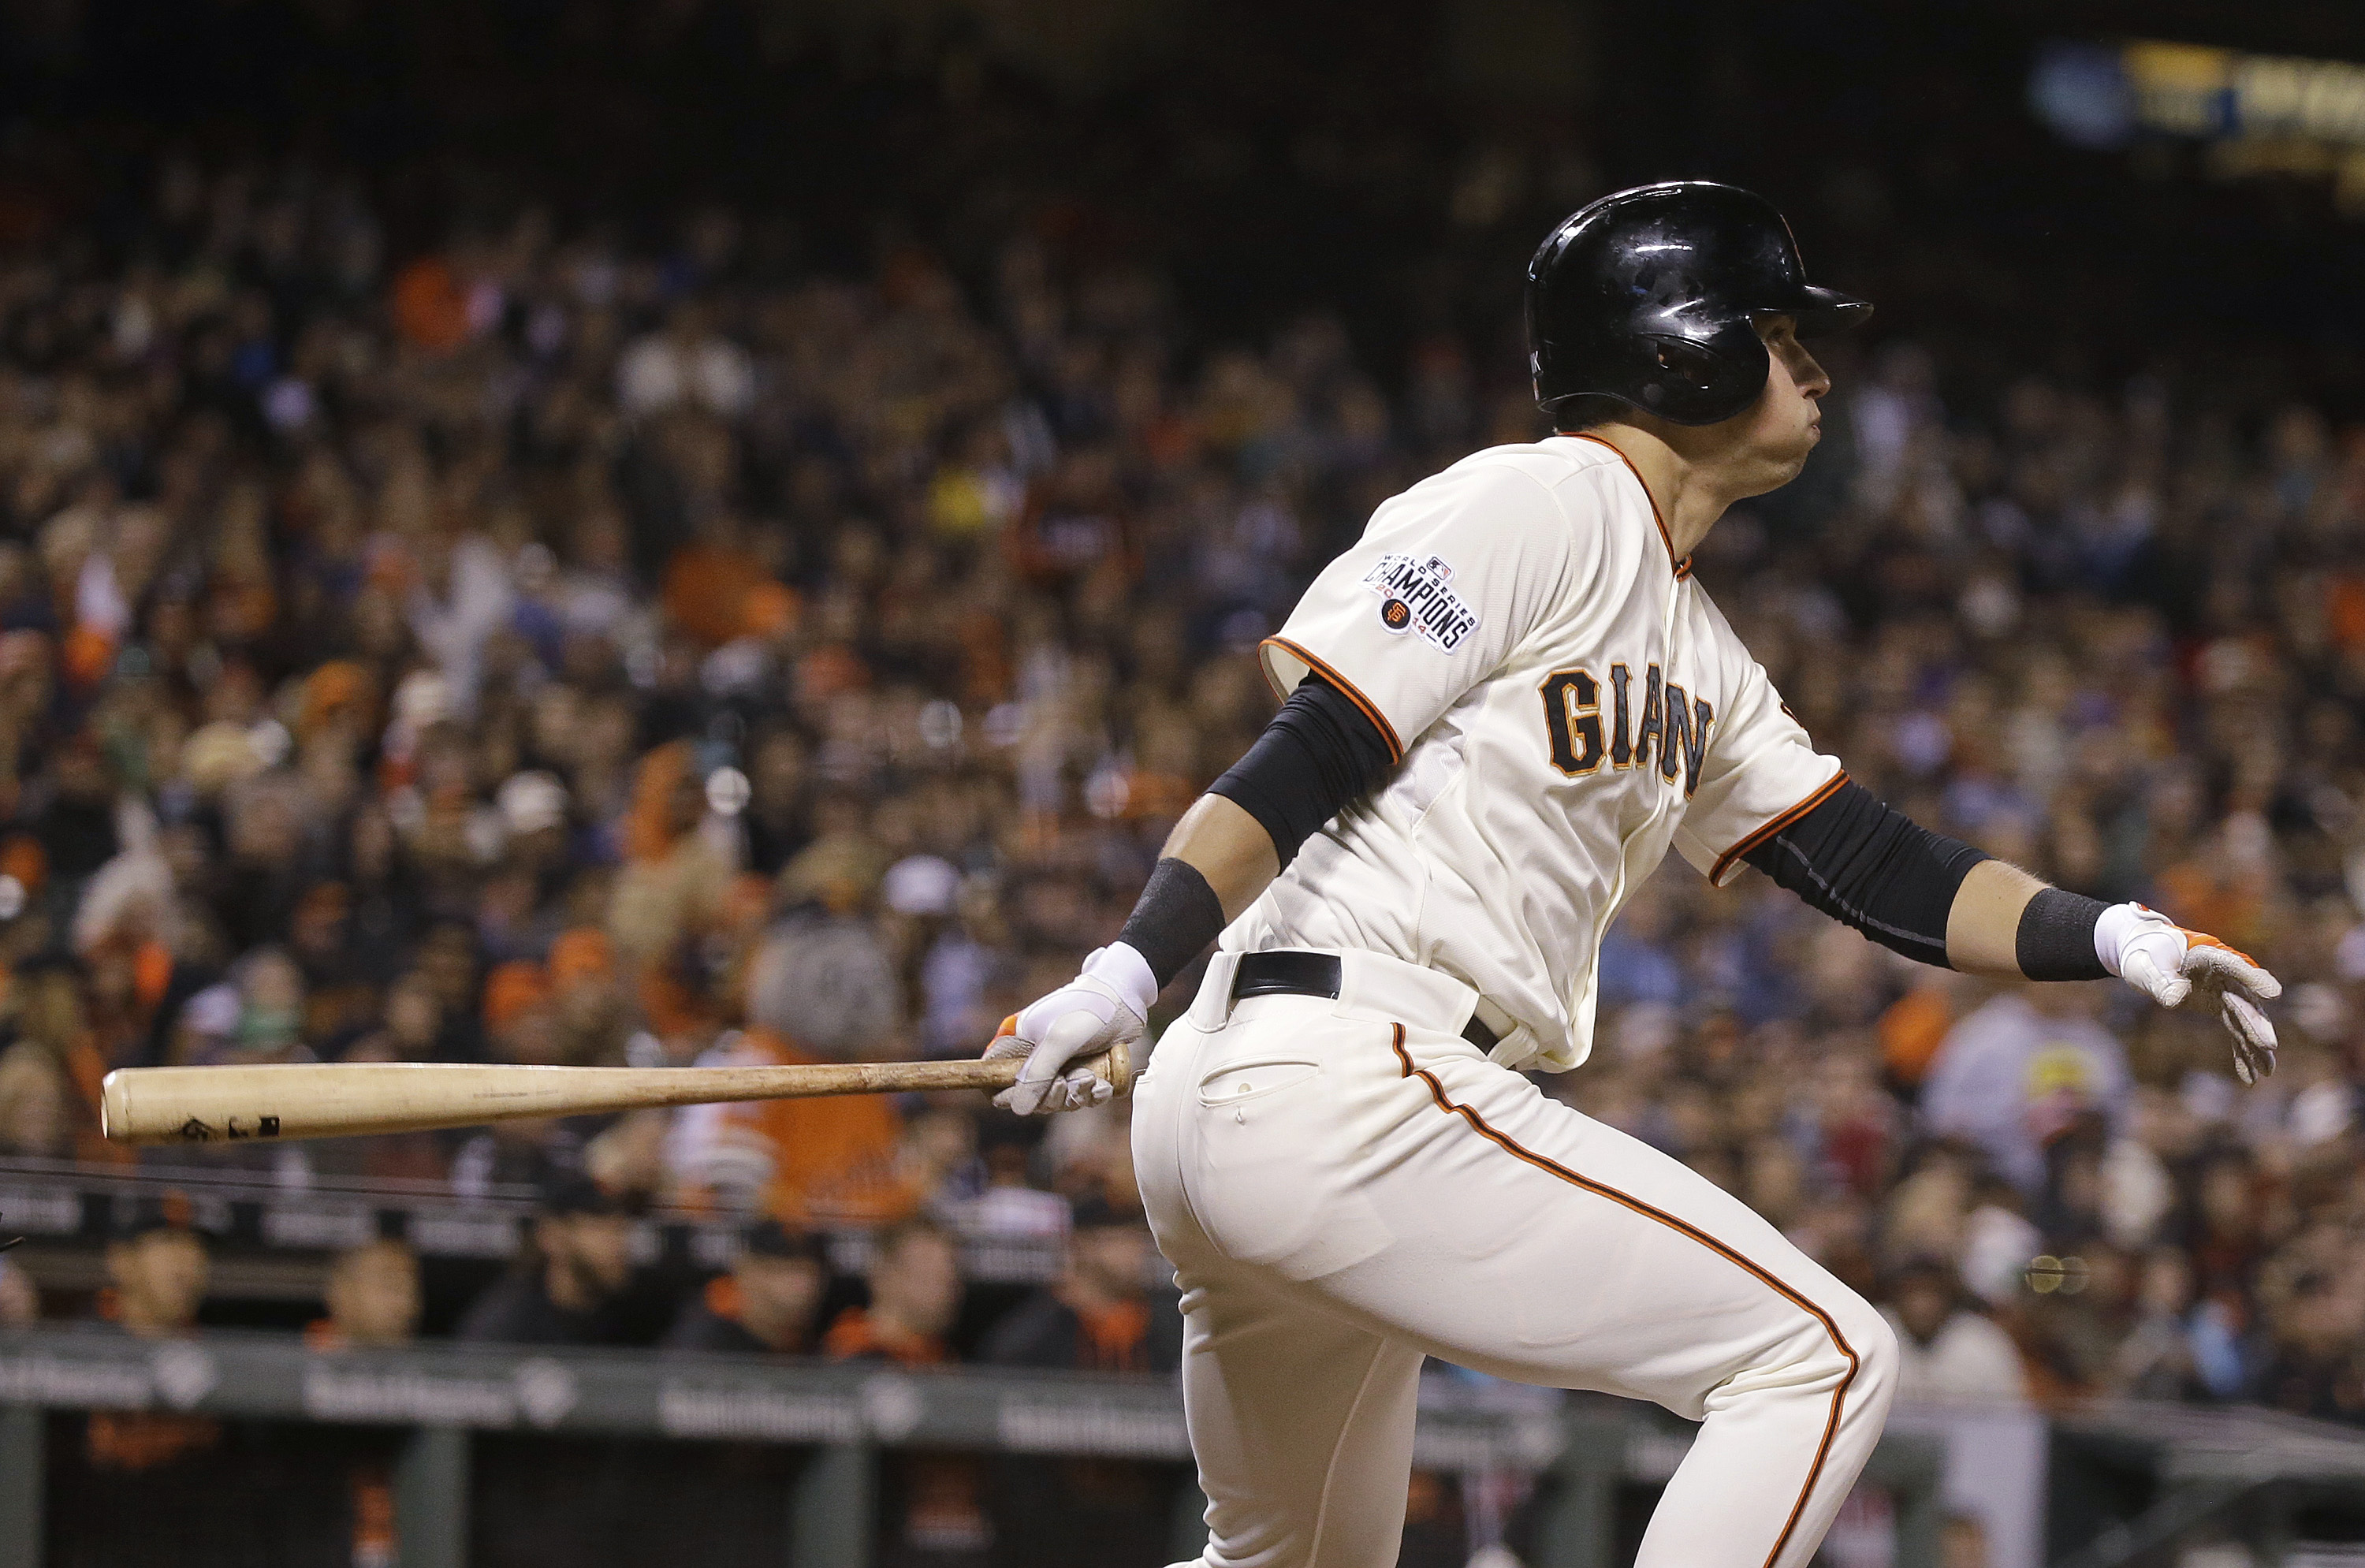 San Francisco Giants' Joe Panik watches his two-run double off Atlanta Braves relief pitcher Brandon Cunniff during the eighth inning of a baseball game Thursday, May 28, 2015, in San Francisco. (AP Photo/Eric Risberg)